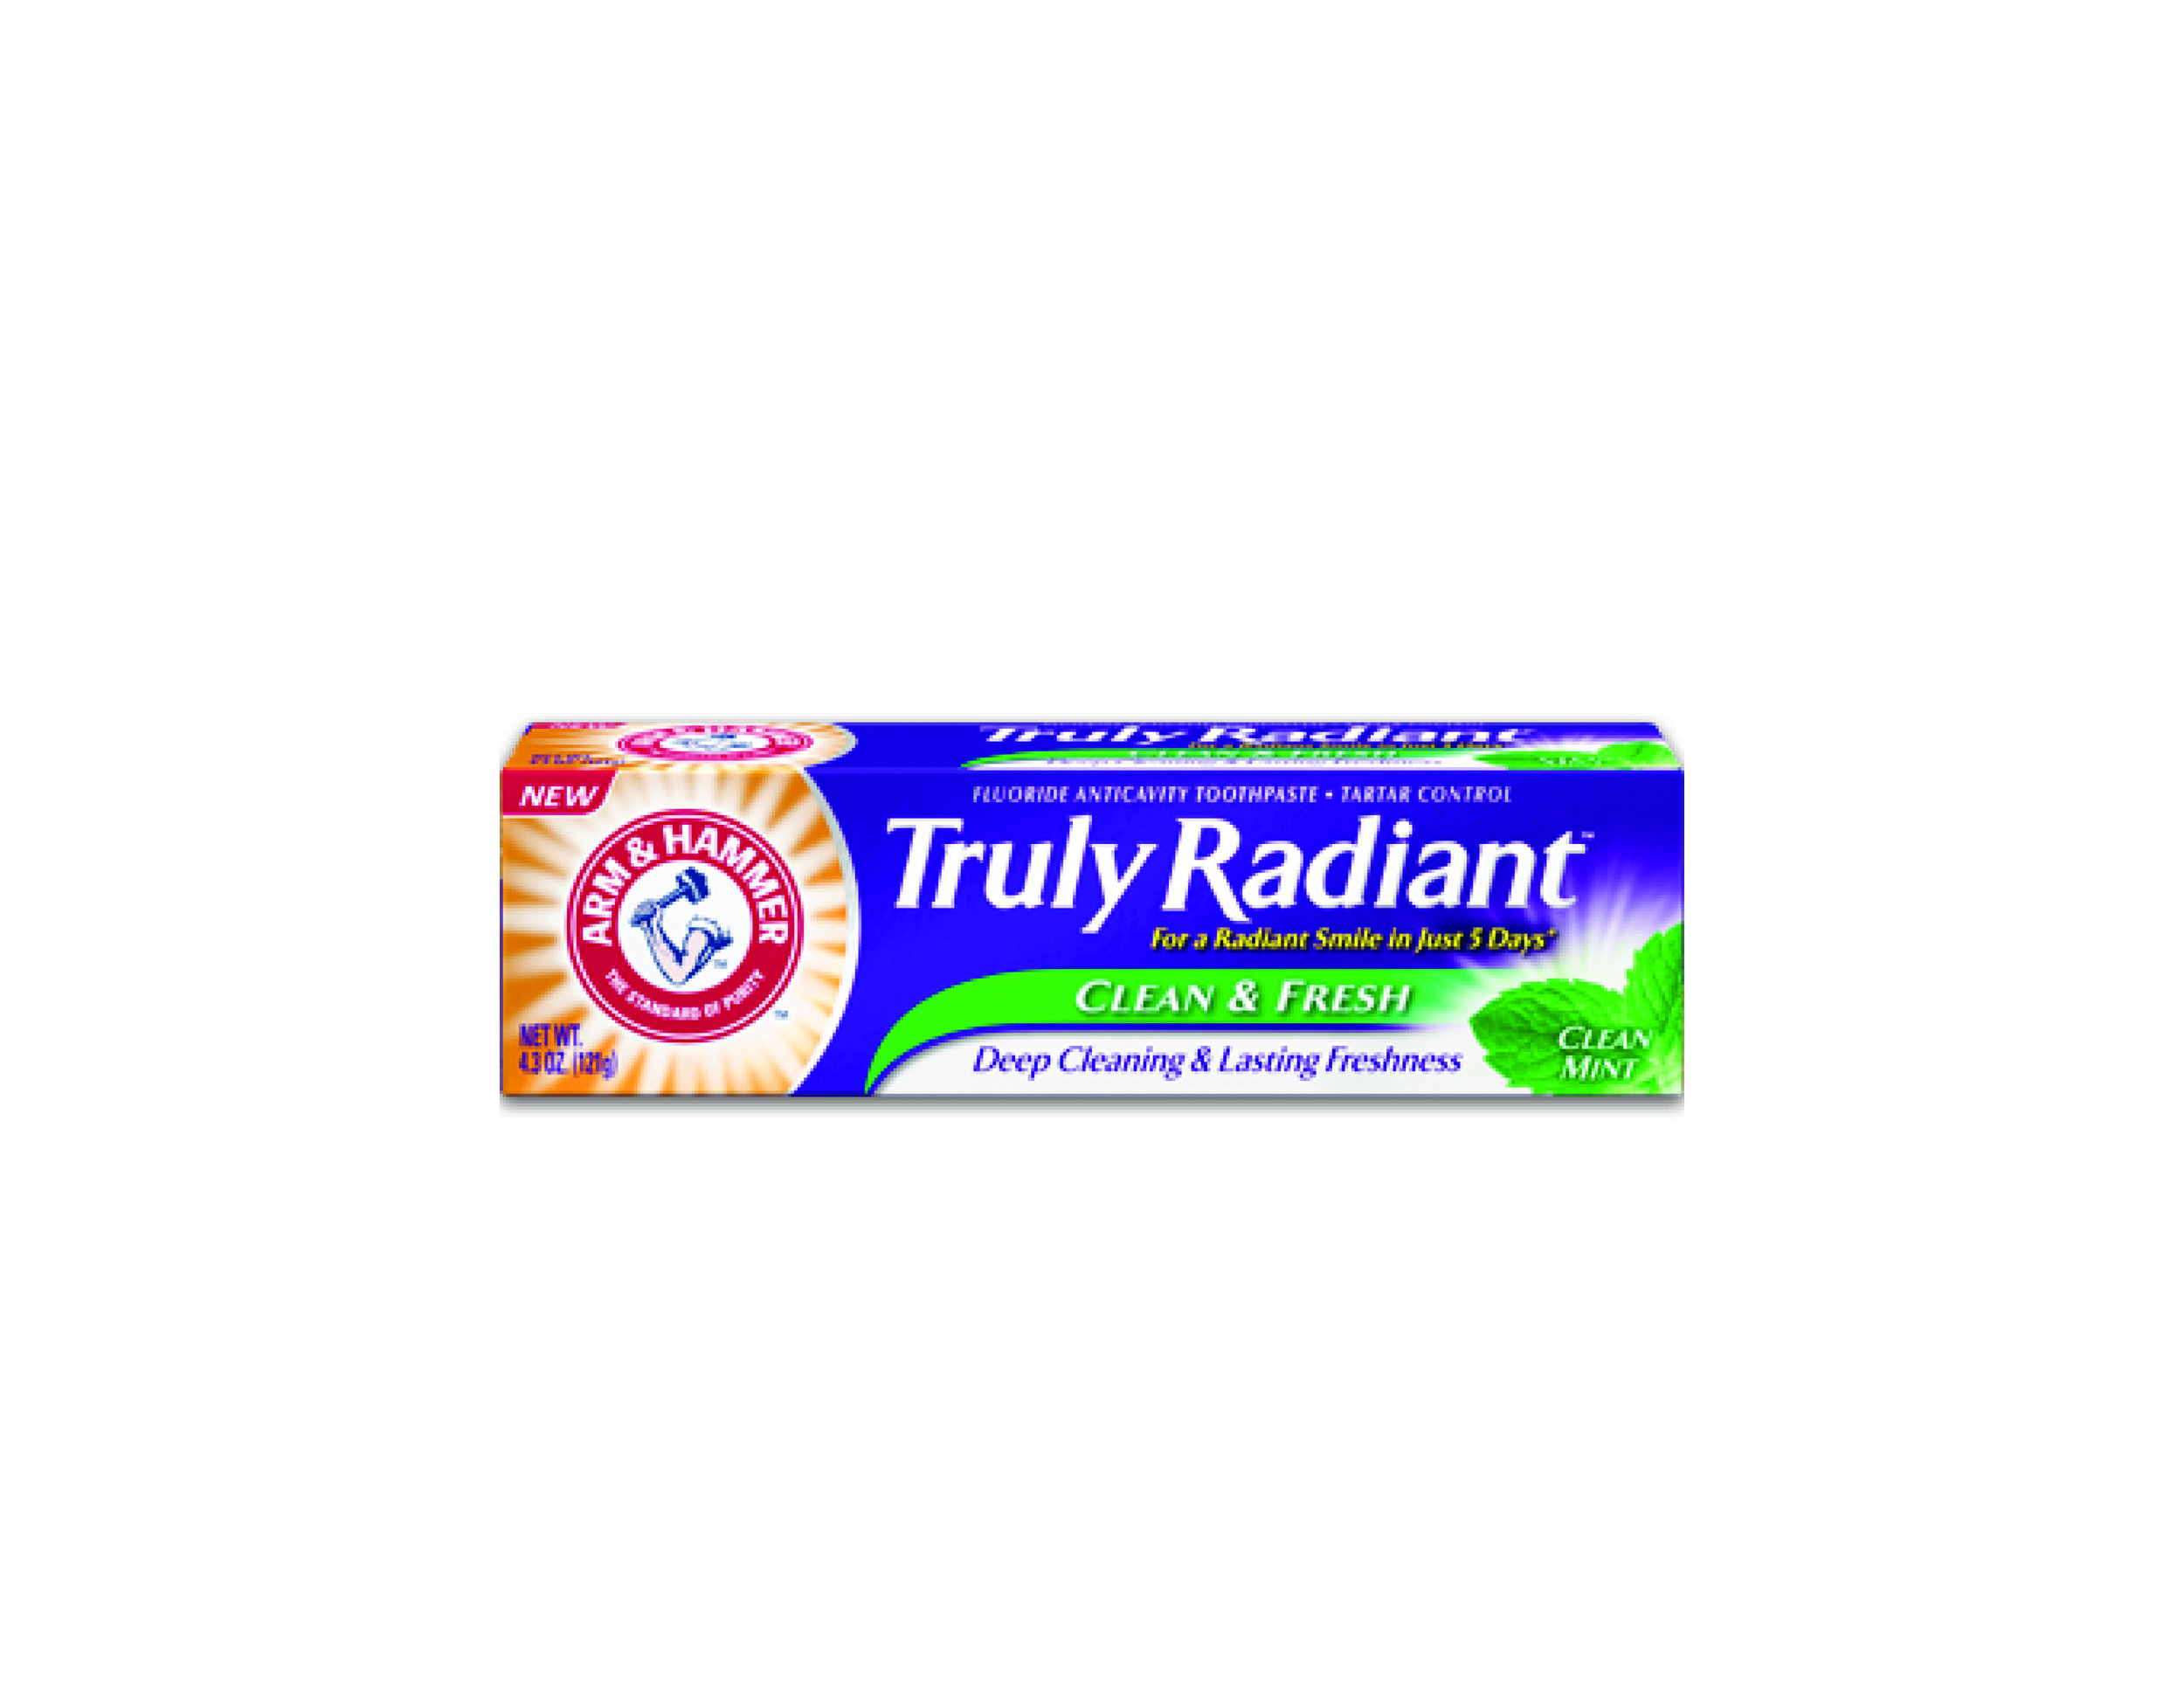 Arm & Hammer Truly Radiant Clean & Fresh Toothpaste & Arm & Hammer Battery-Powered SpinBrush $3.99. Available at drugstores & mass market retailers across Canada.